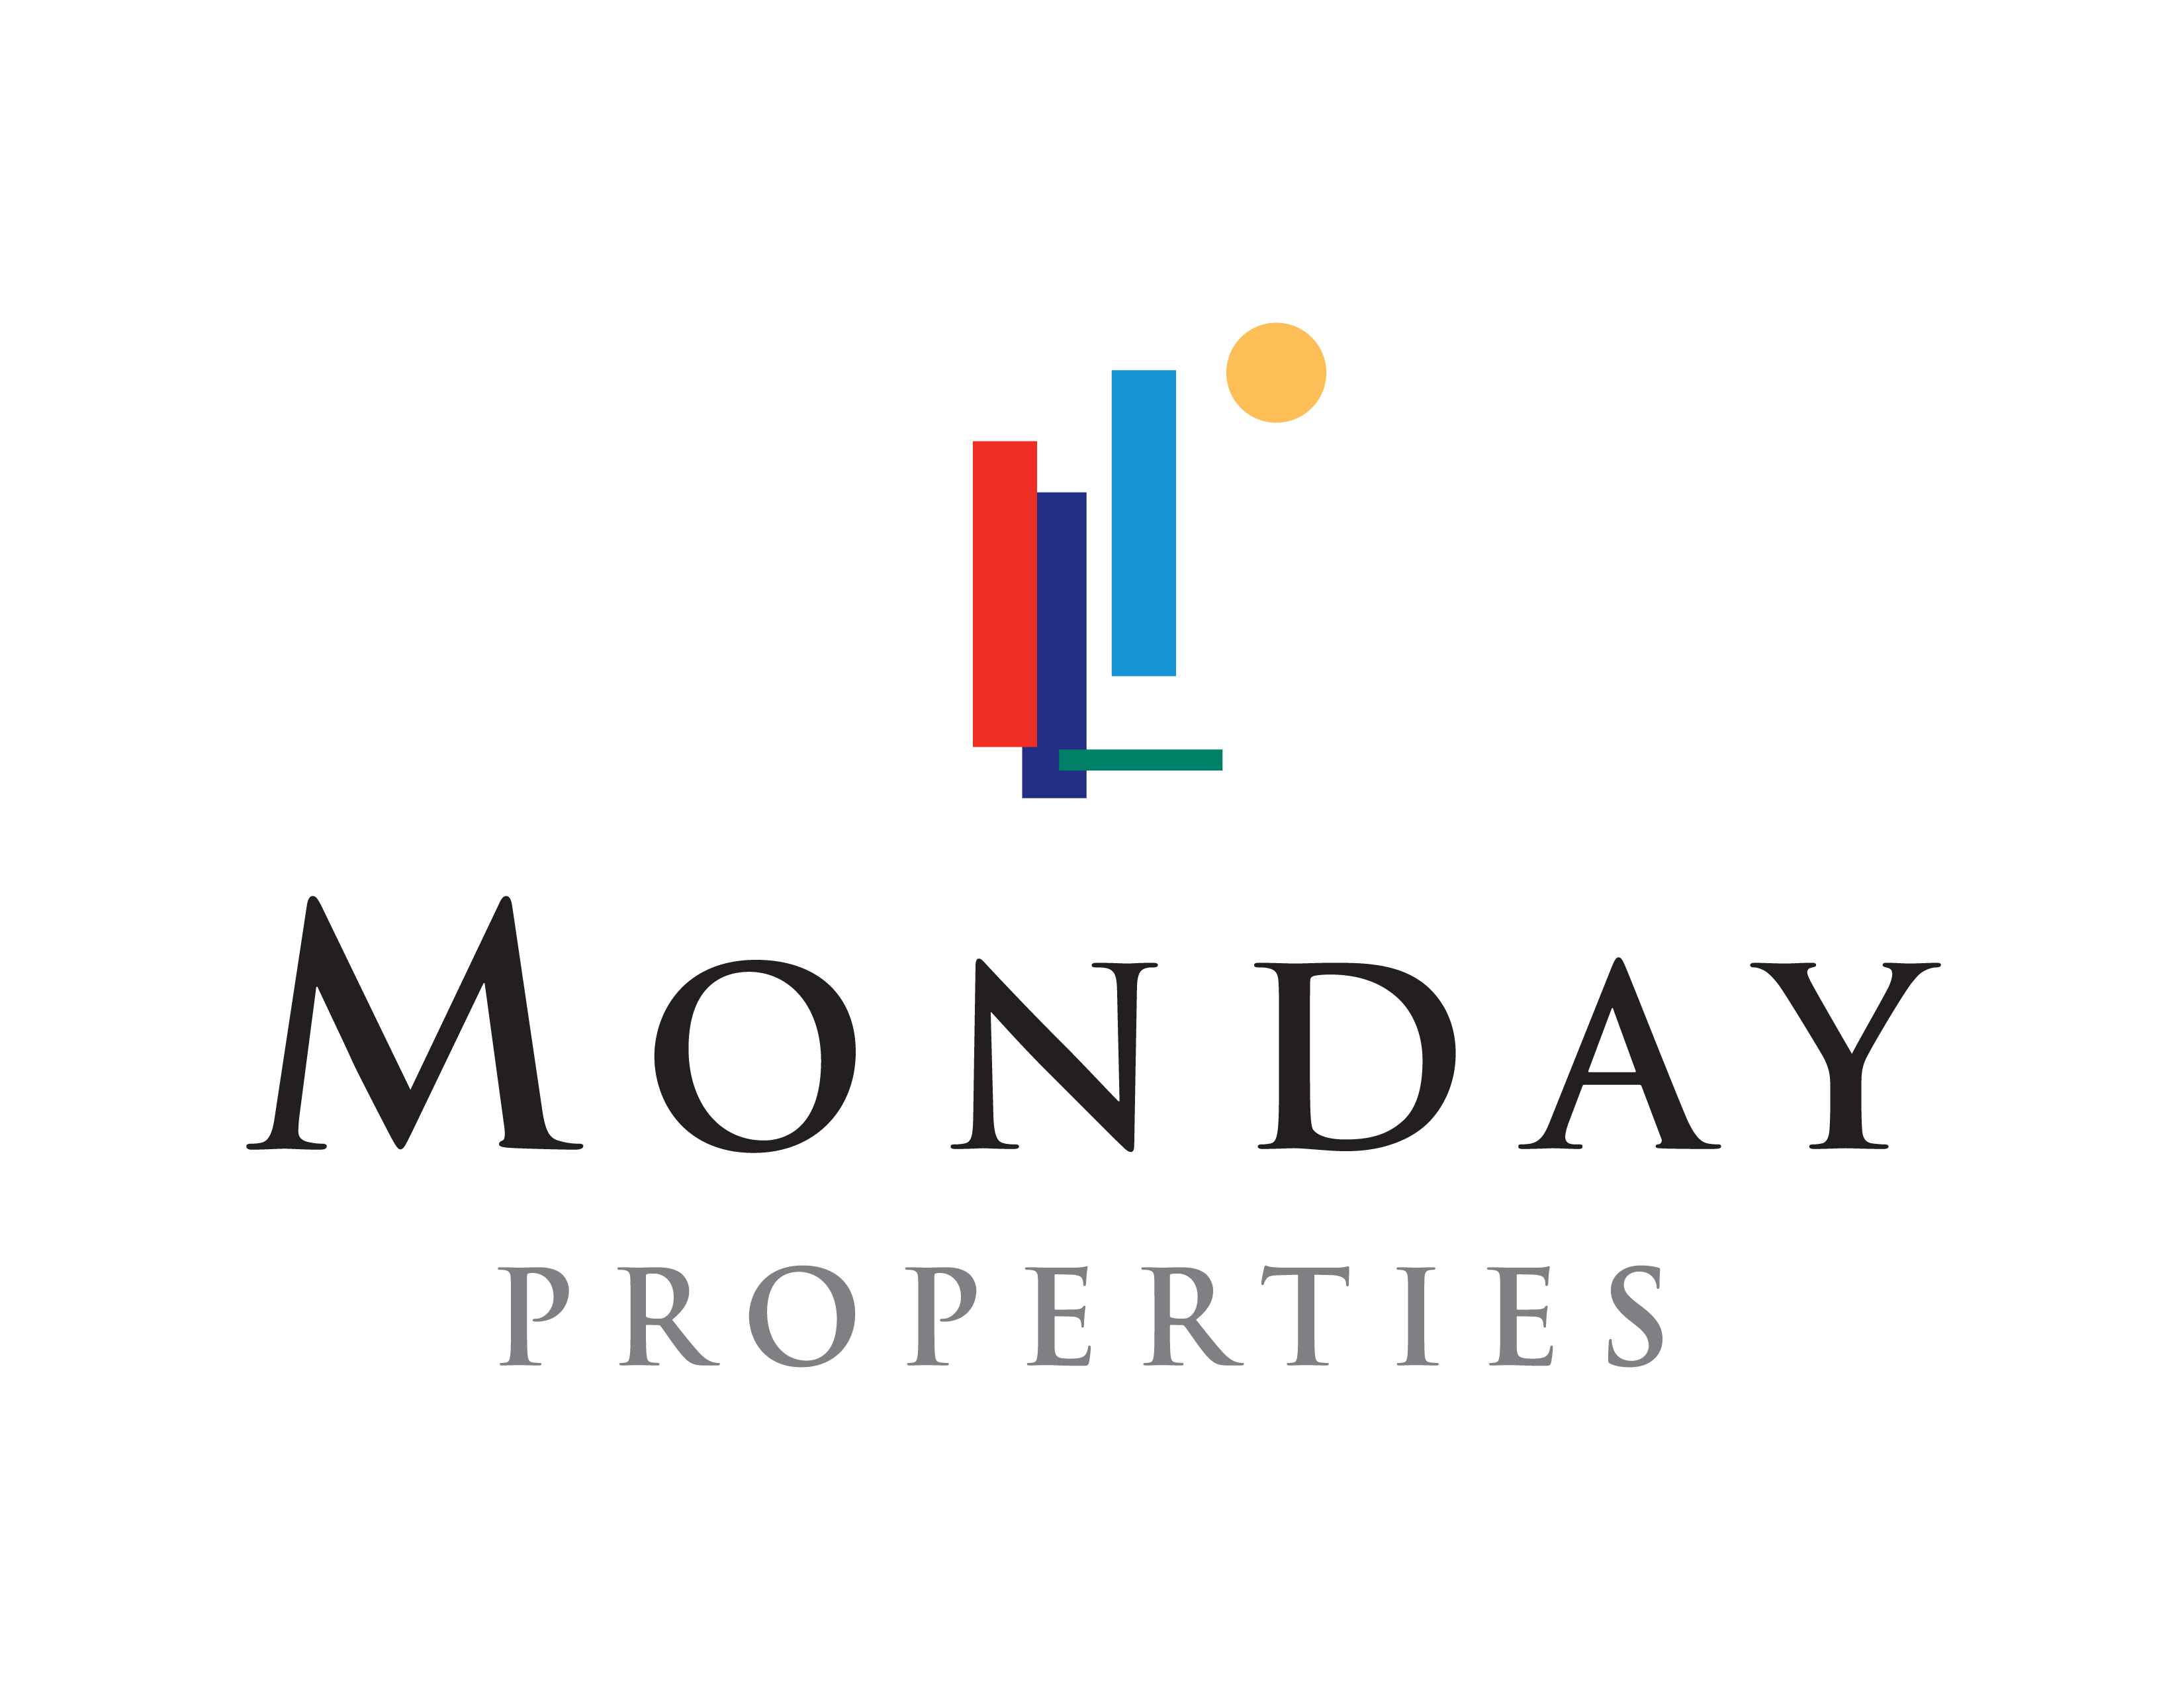 Monday Properties